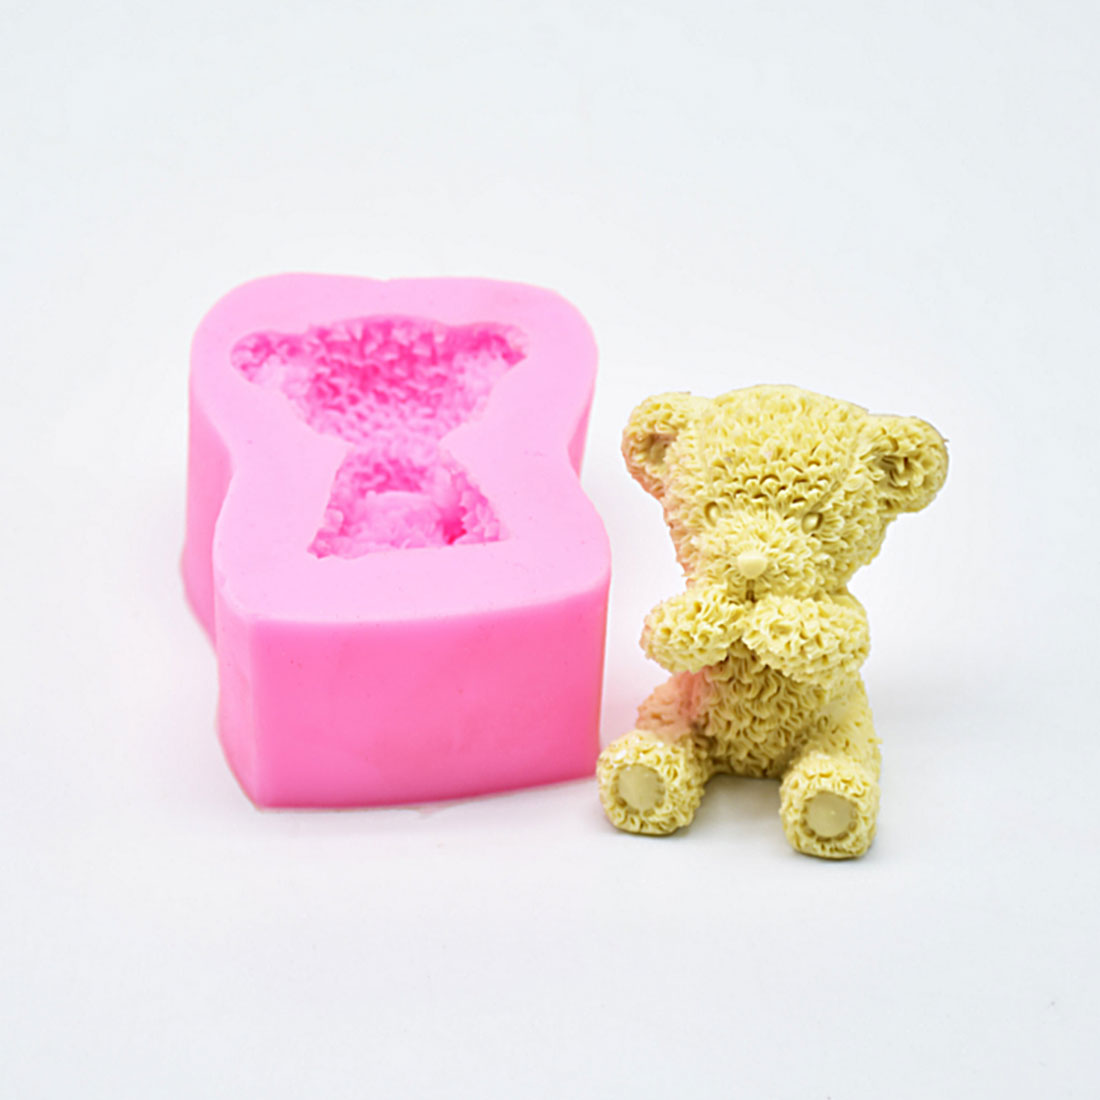 Hot Sale Sugarcraft Mini Bear silicone mold fondant mold cake decorating tools chocolate soap mold